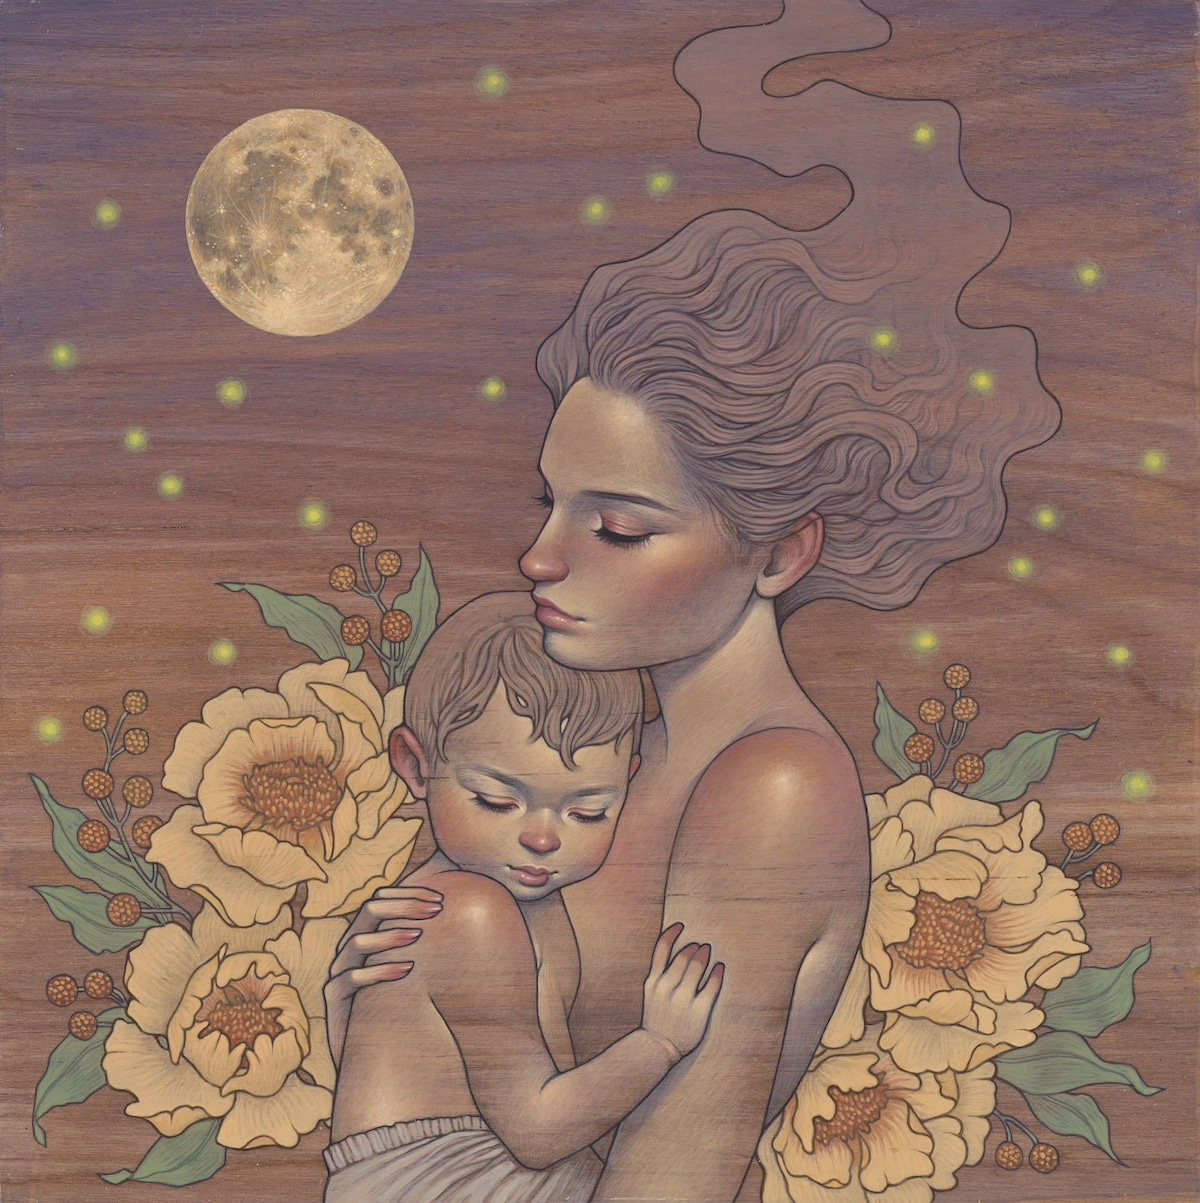 mother-and-child-art-dorothy-circus-gallery-3.jpg